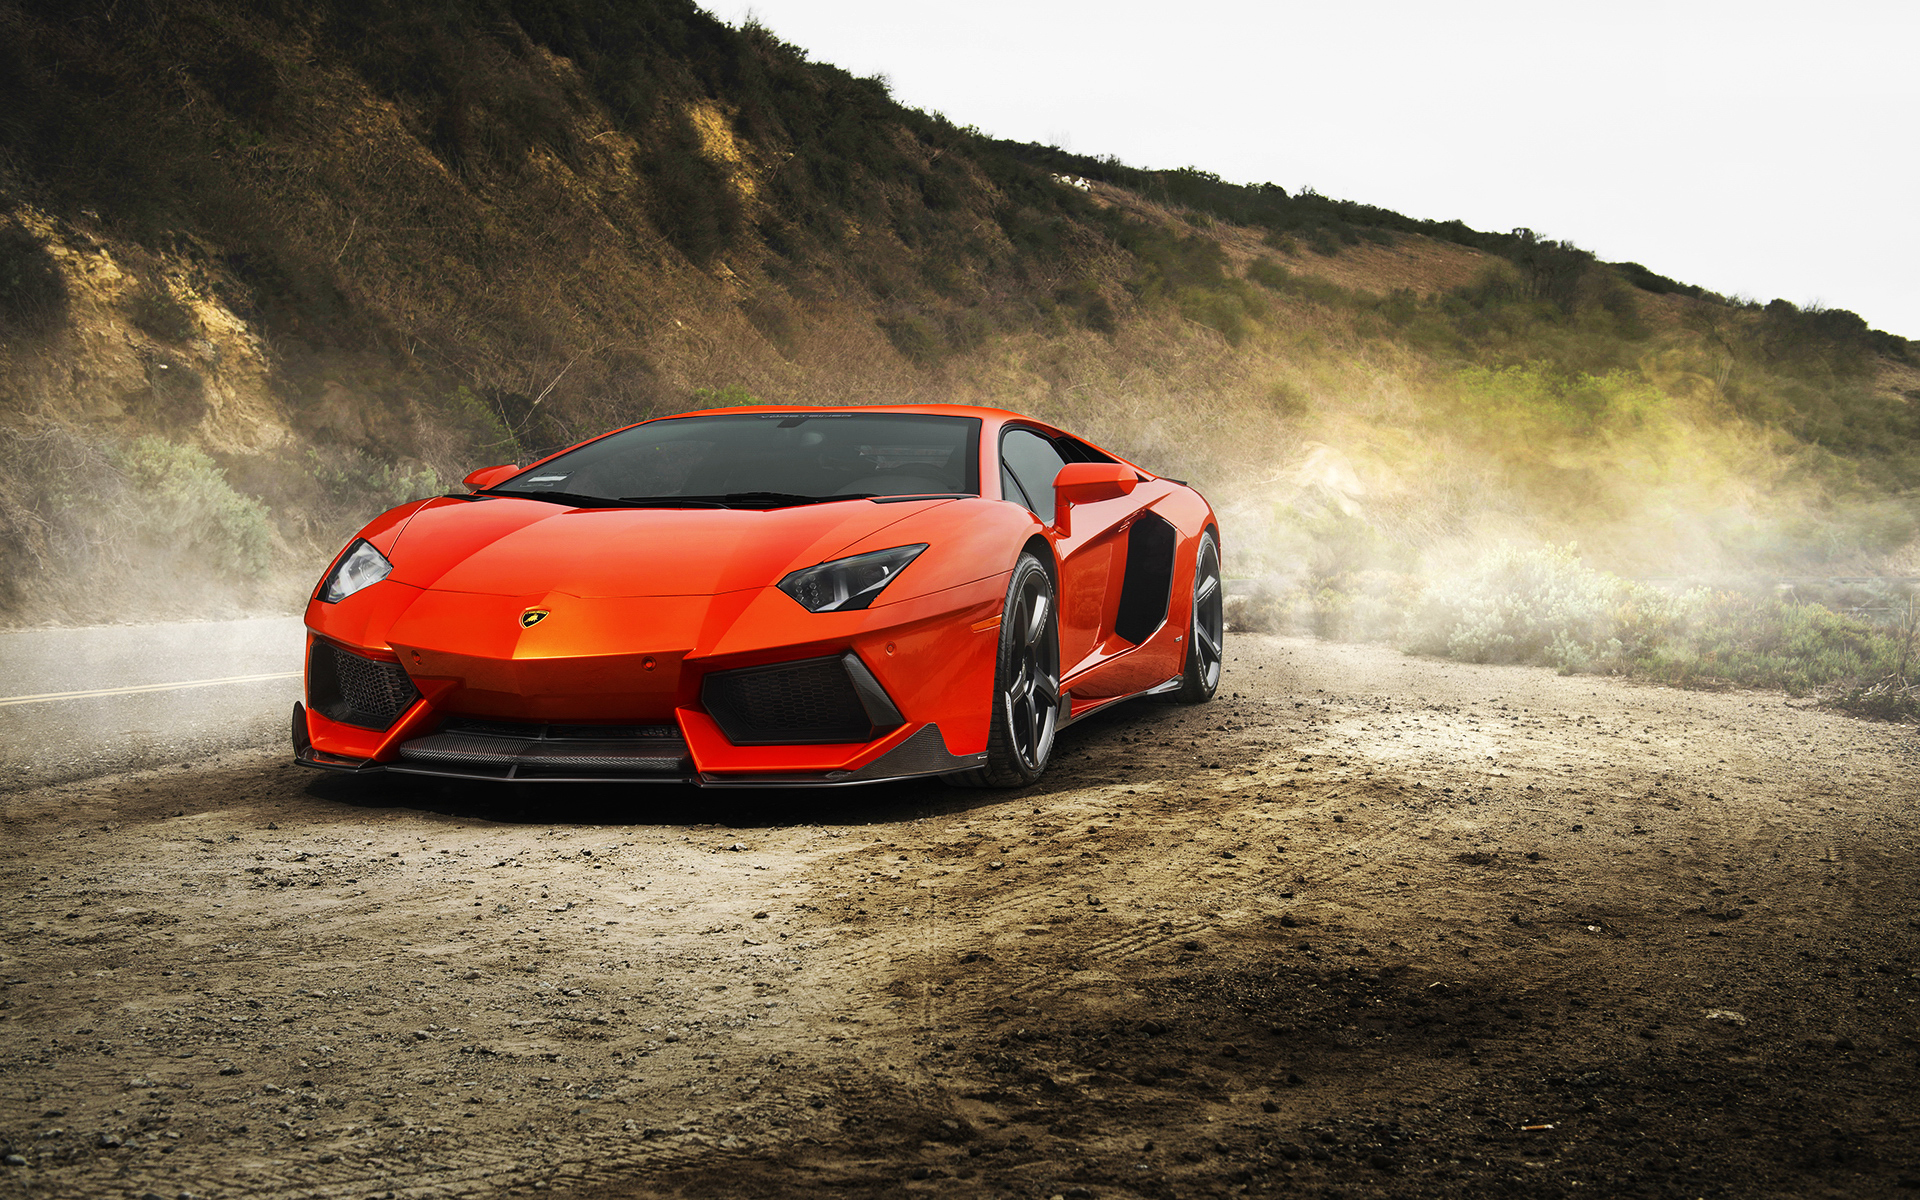 Lamborghini aventador high resolution pictures all hd for Immagini desktop hd 1920x1080